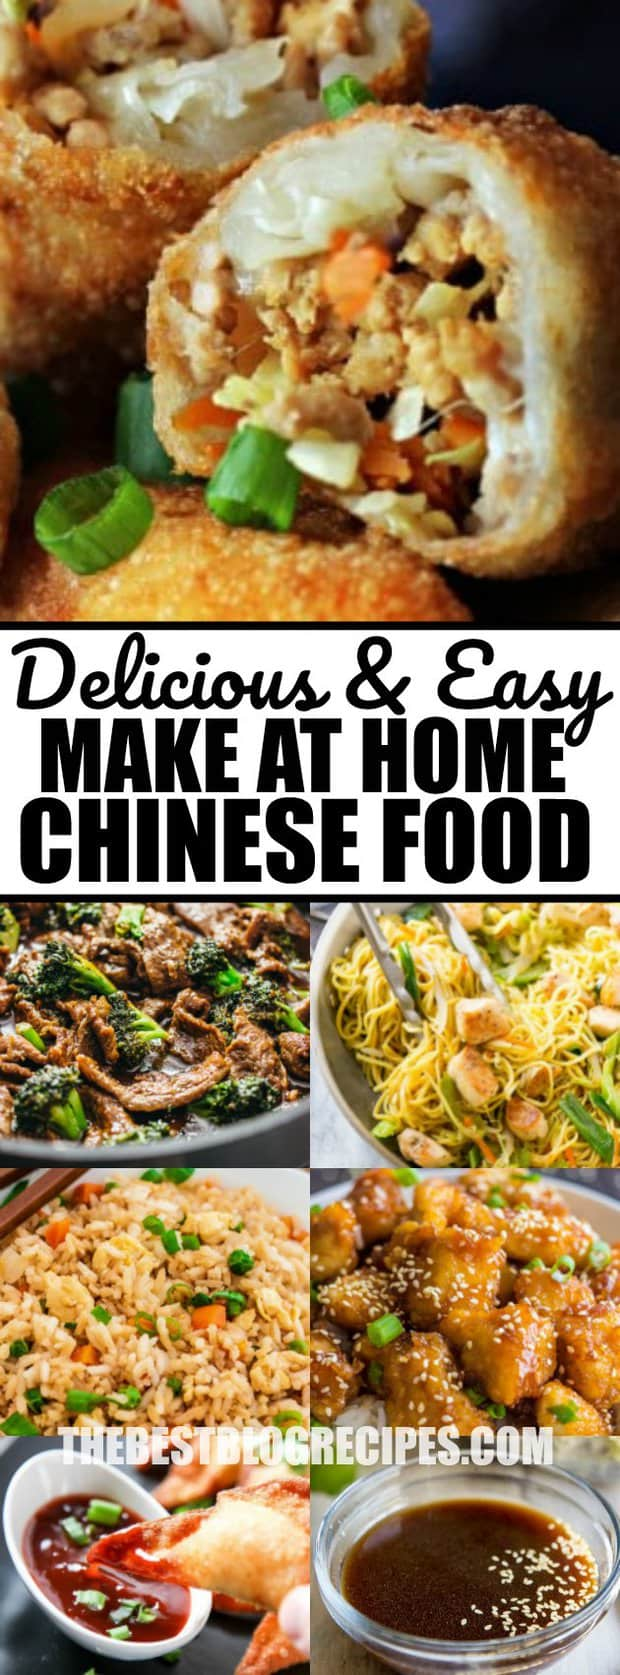 The best chinese recipes the best blog recipes delicious easy make at home chinese food forumfinder Images